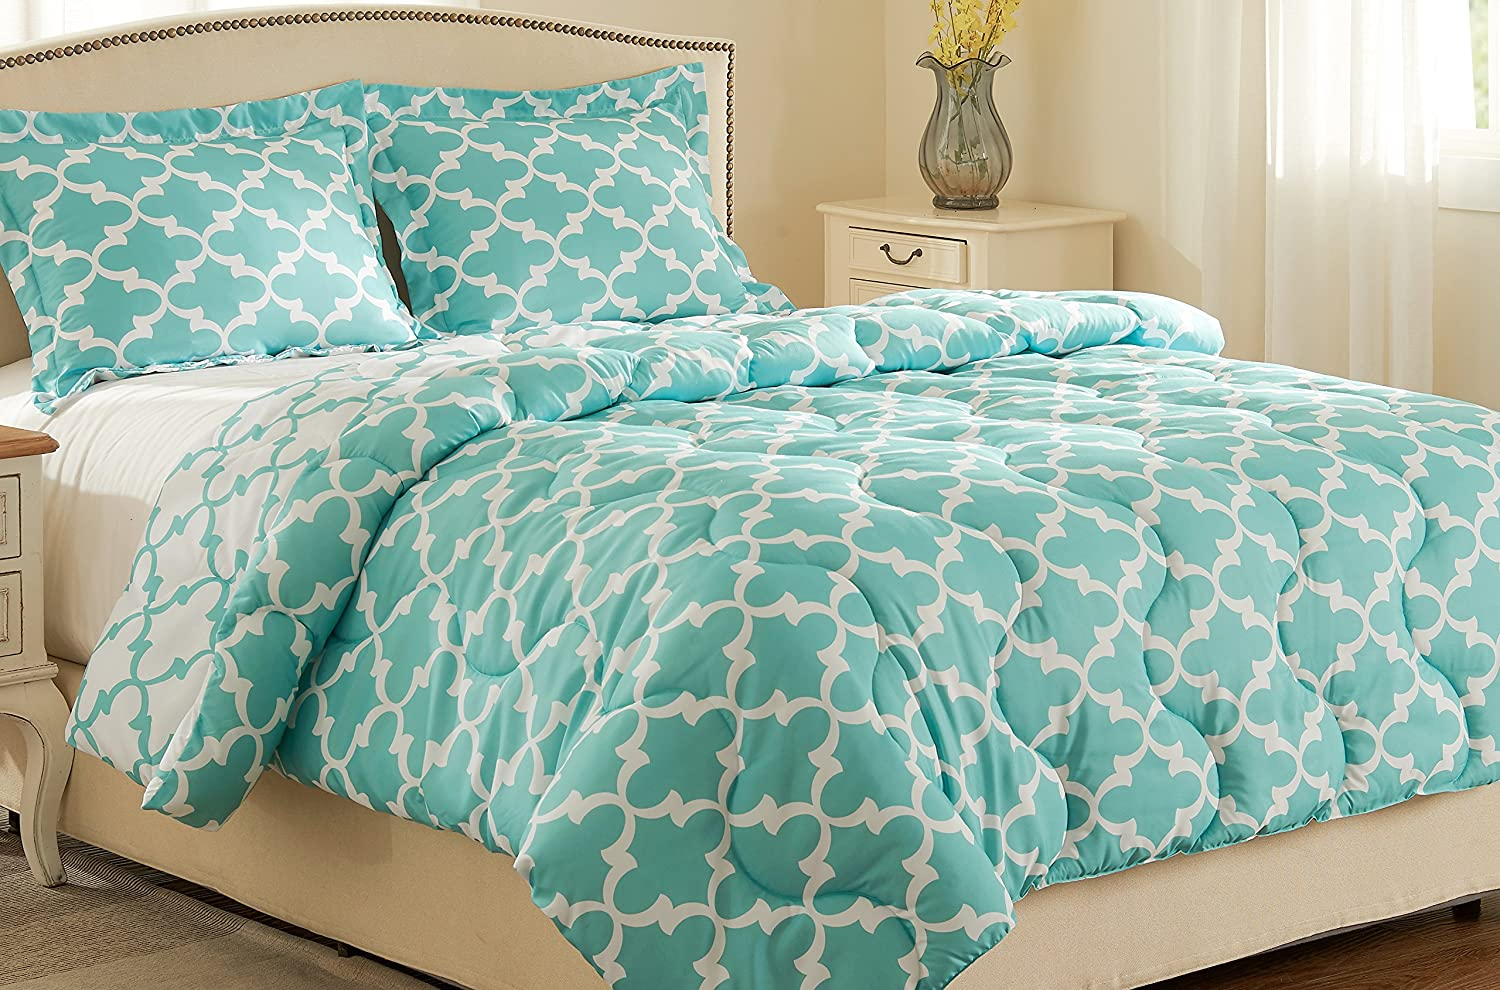 Millihome Back to school Lightweight Printed Luxurious Soft Brushed Microfiber Down Alternative Reversible Comforter Set